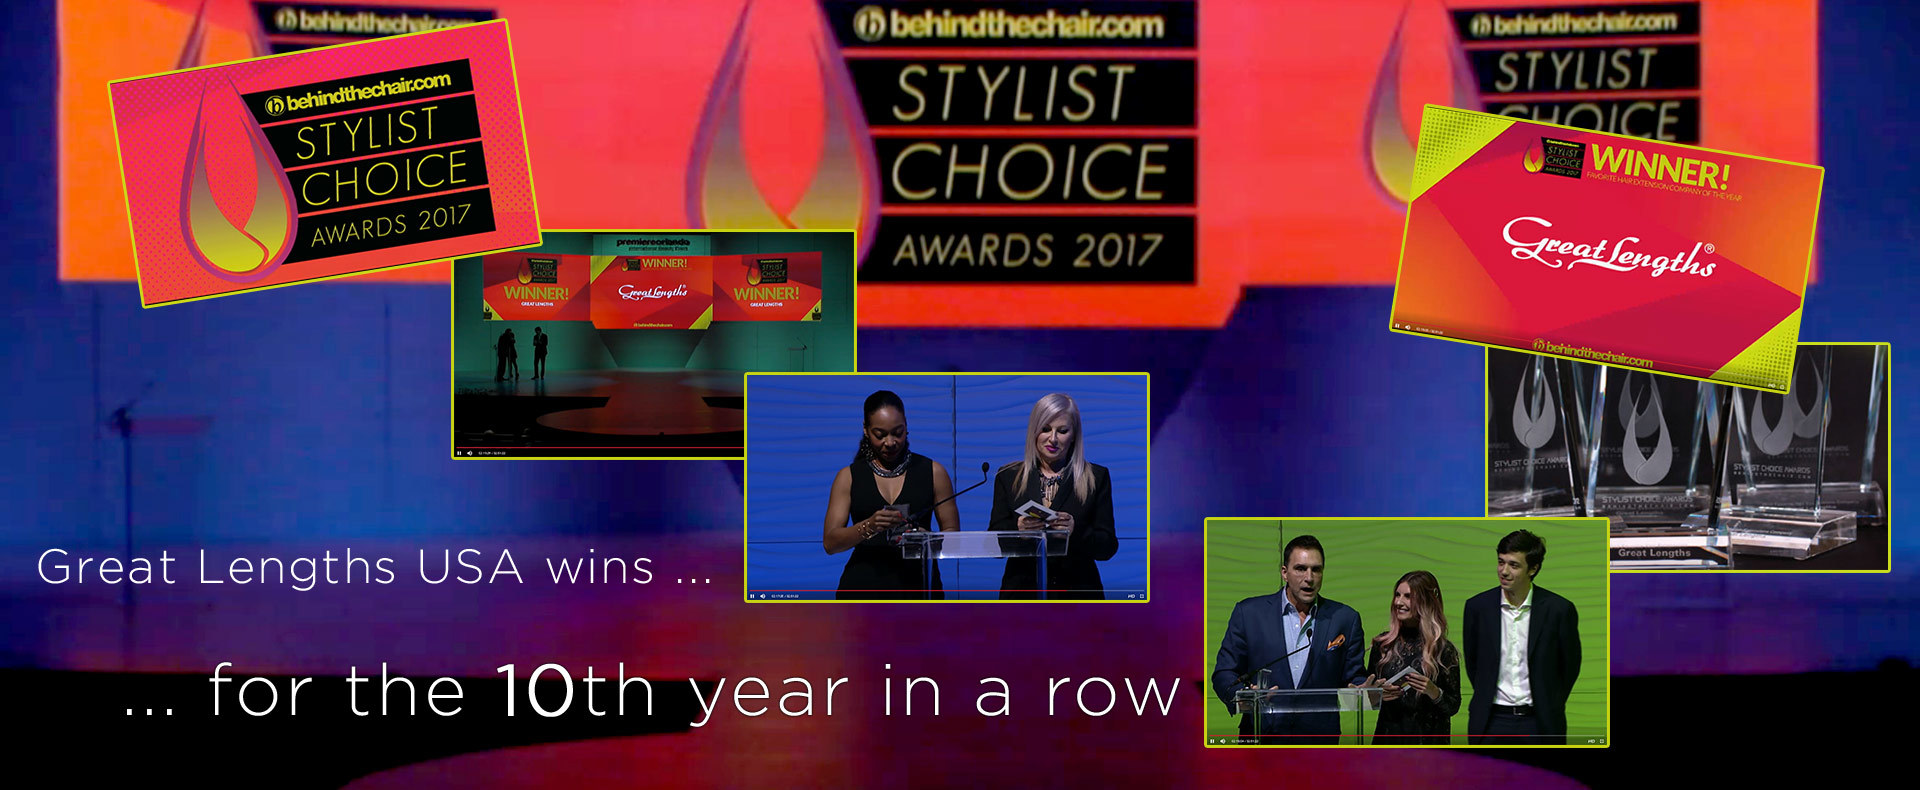 Great Lengths USA wins for the 10th year in a row (© Great Lengths)